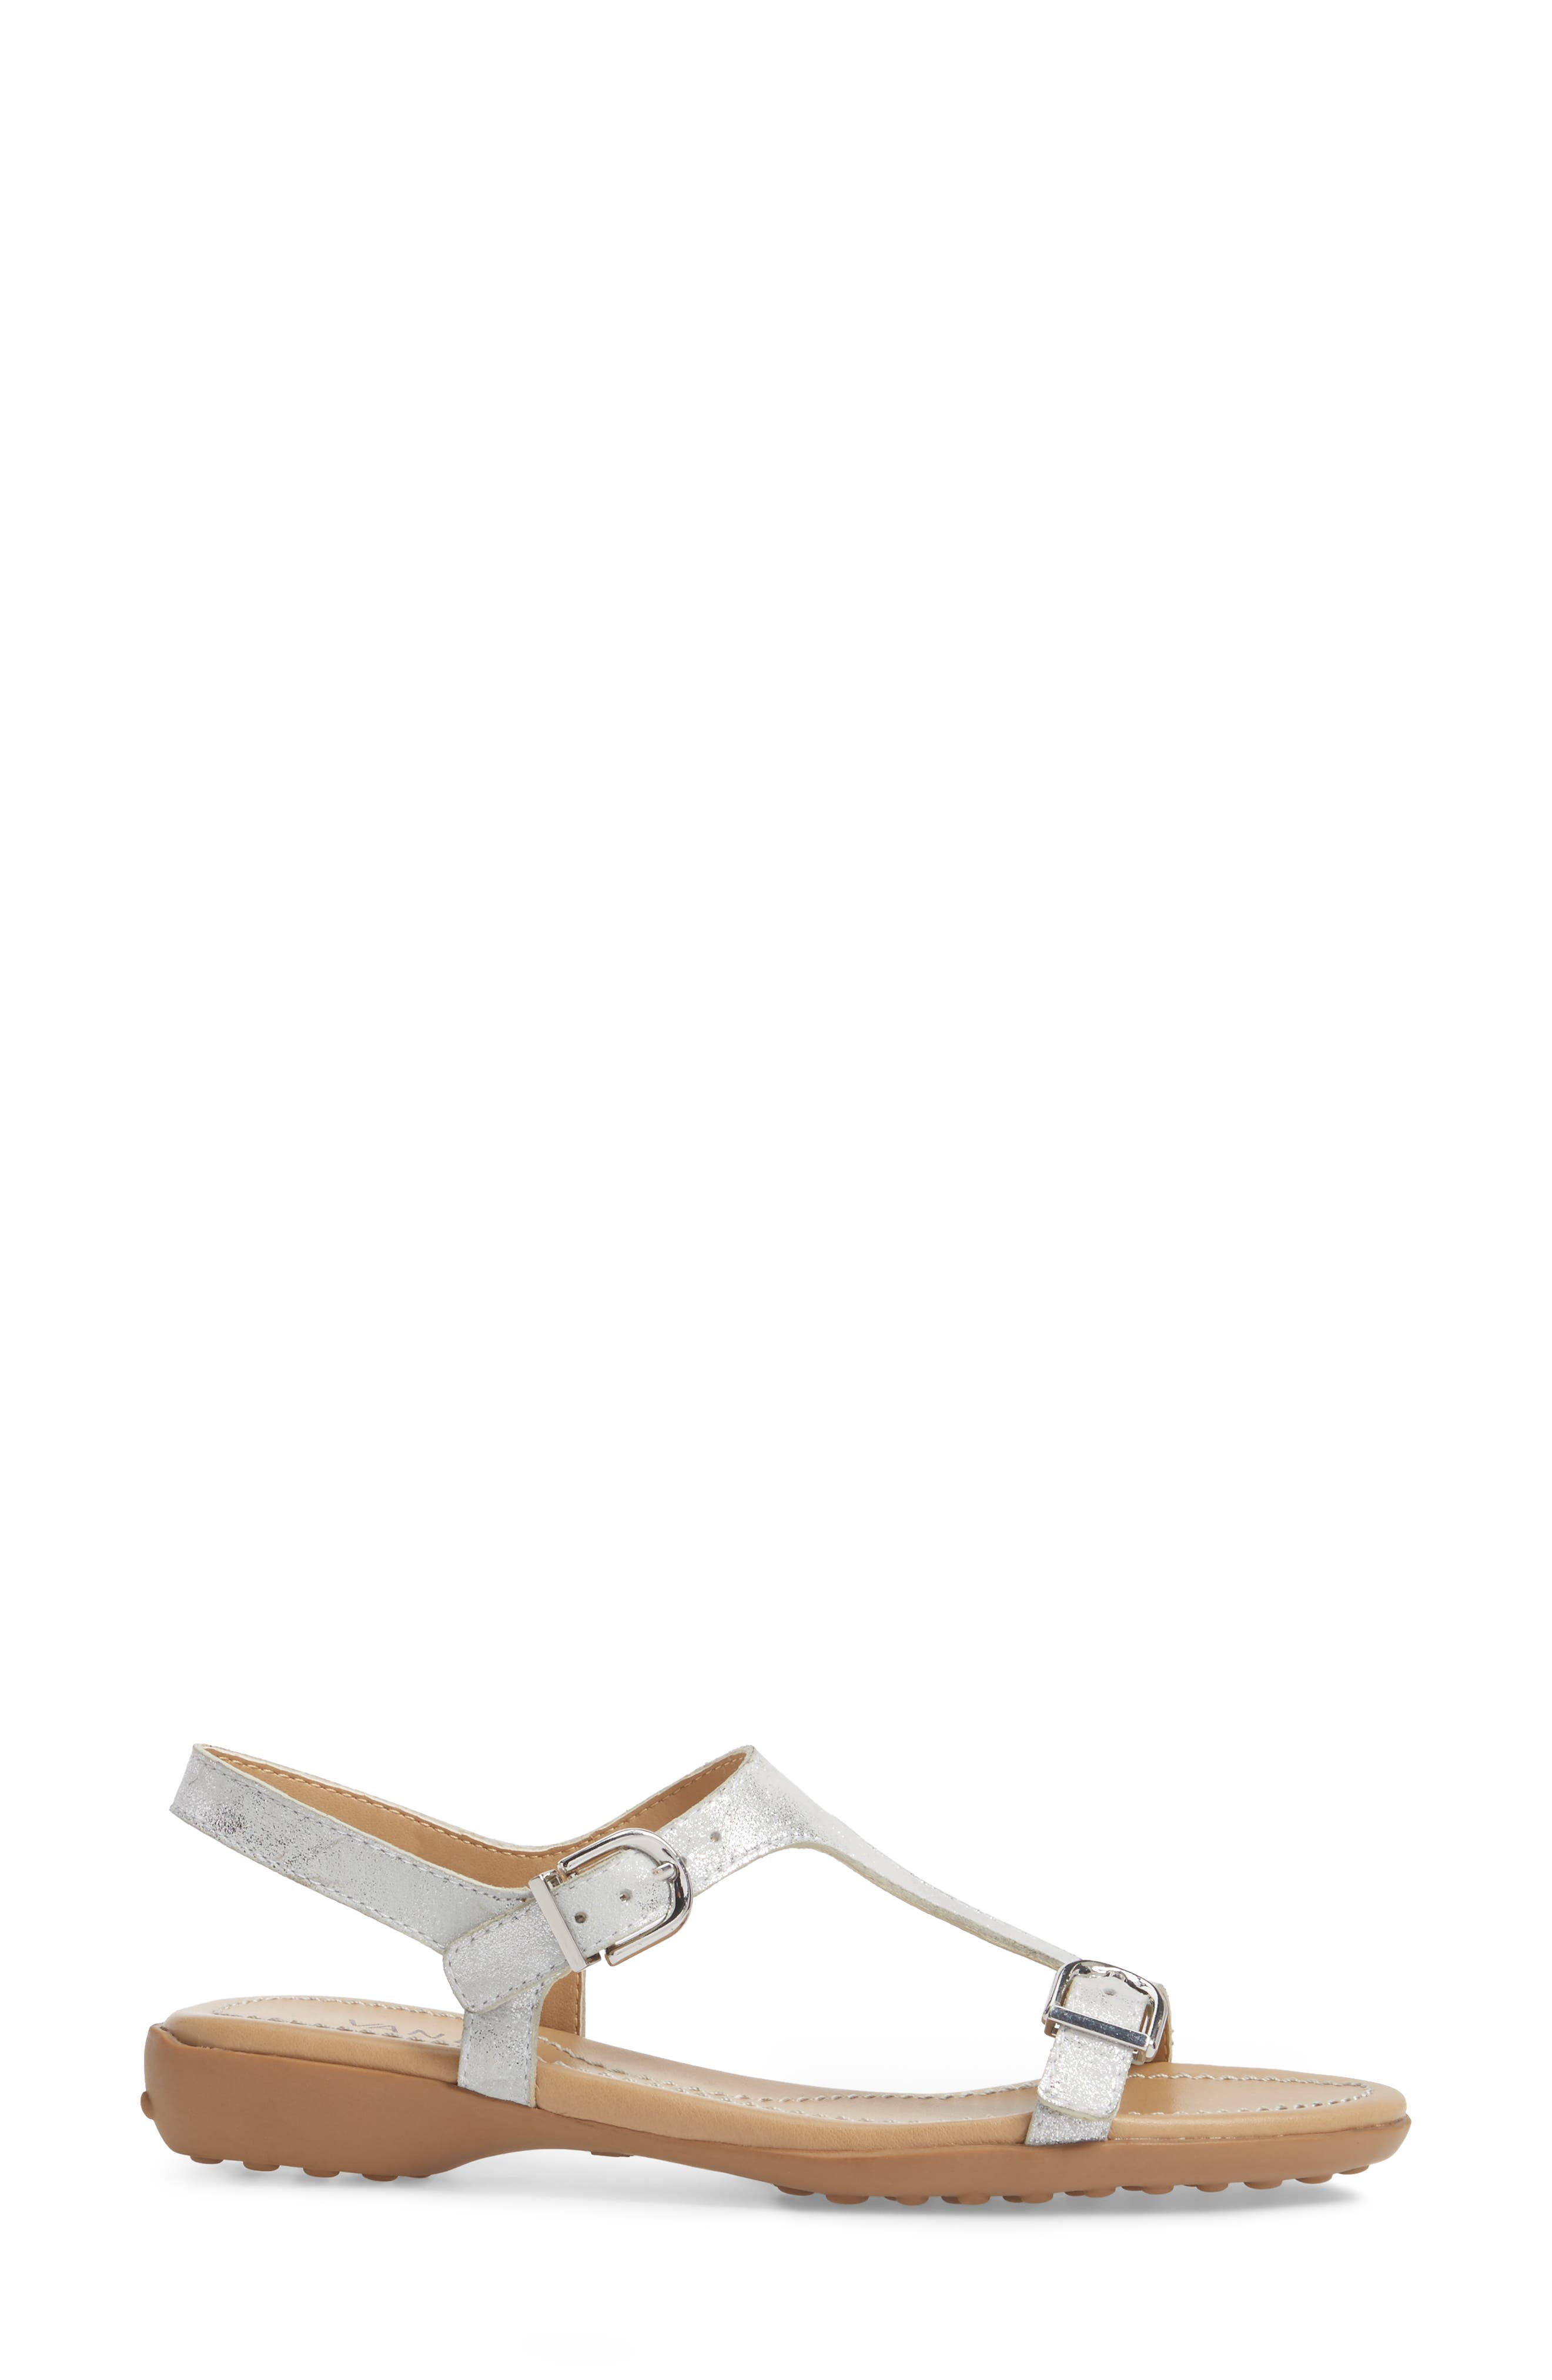 Taletha T-Strap Sandal,                             Alternate thumbnail 3, color,                             Silver Printed Suede